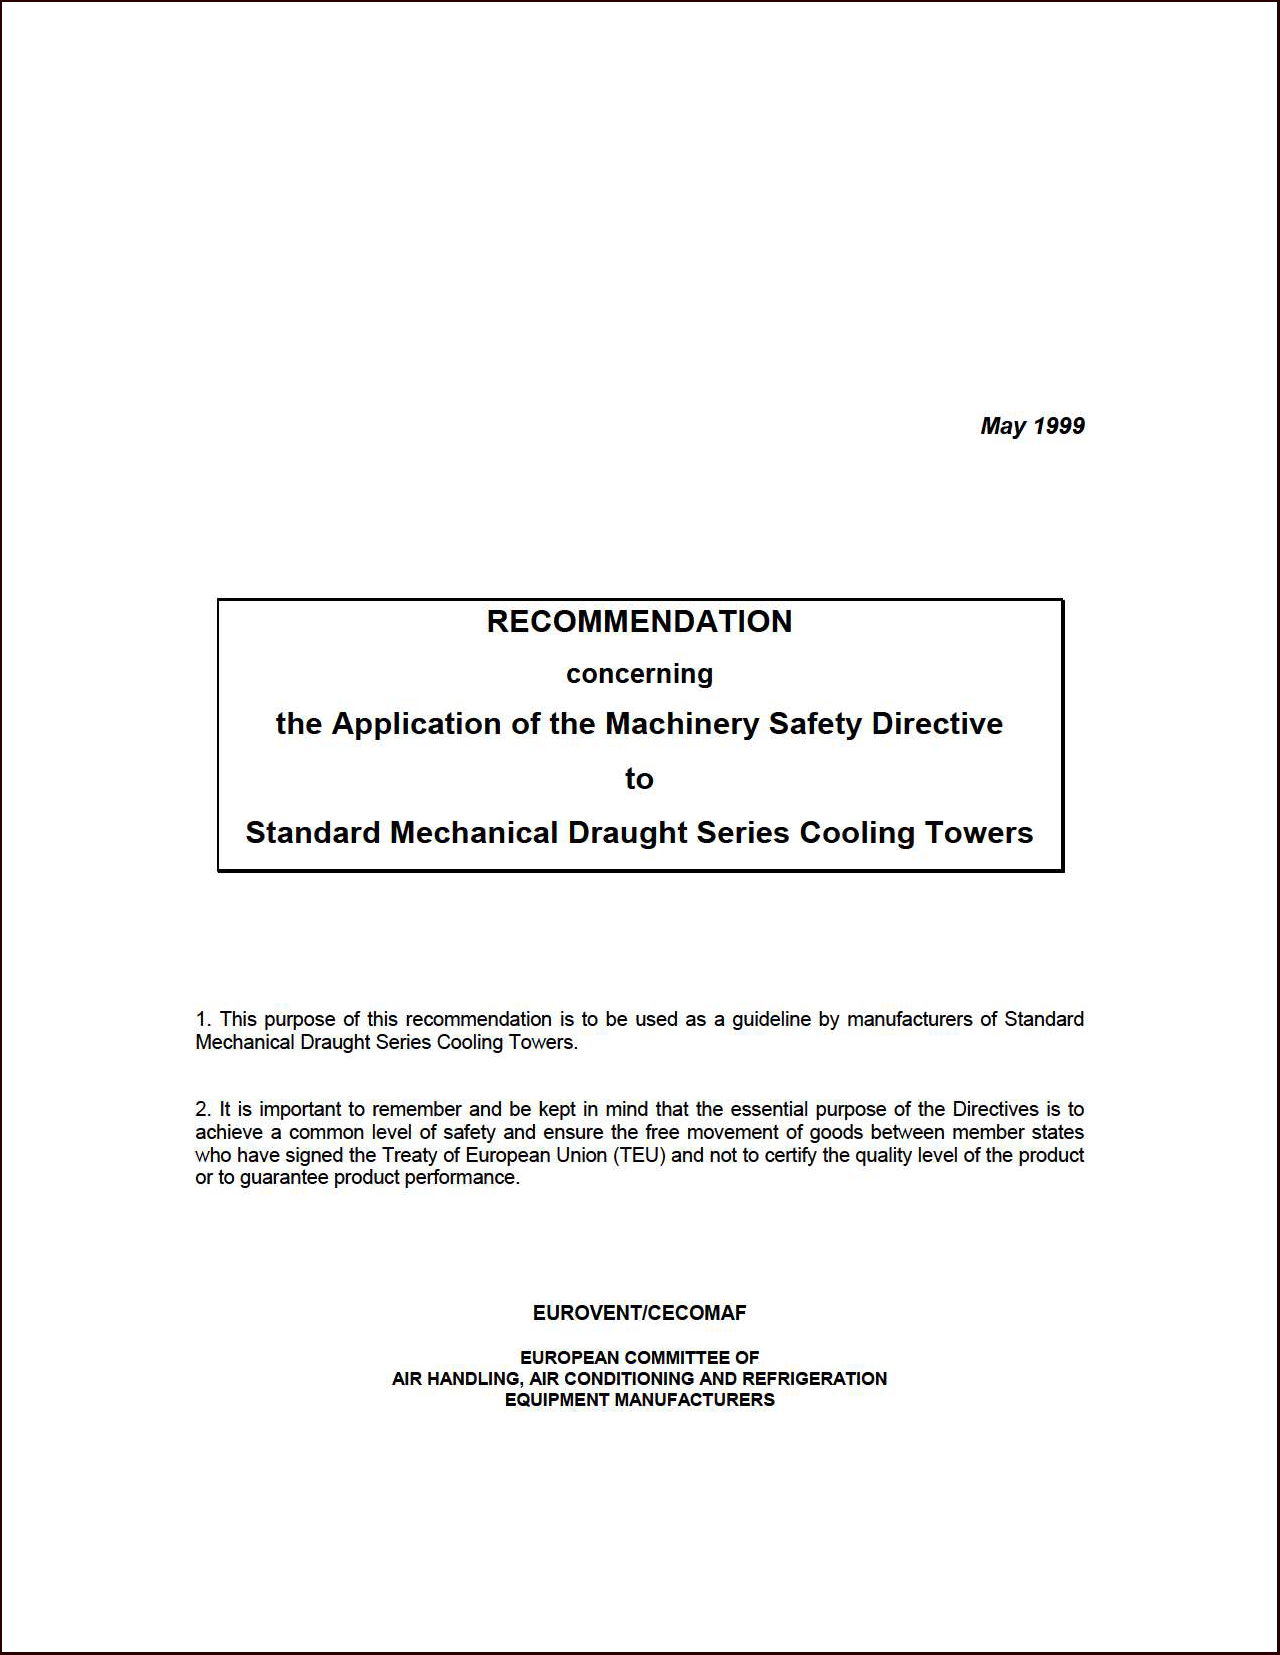 1999 - Application of the Machinery Safety Directive to Standard Mechanical Draught Series Cooling Towers